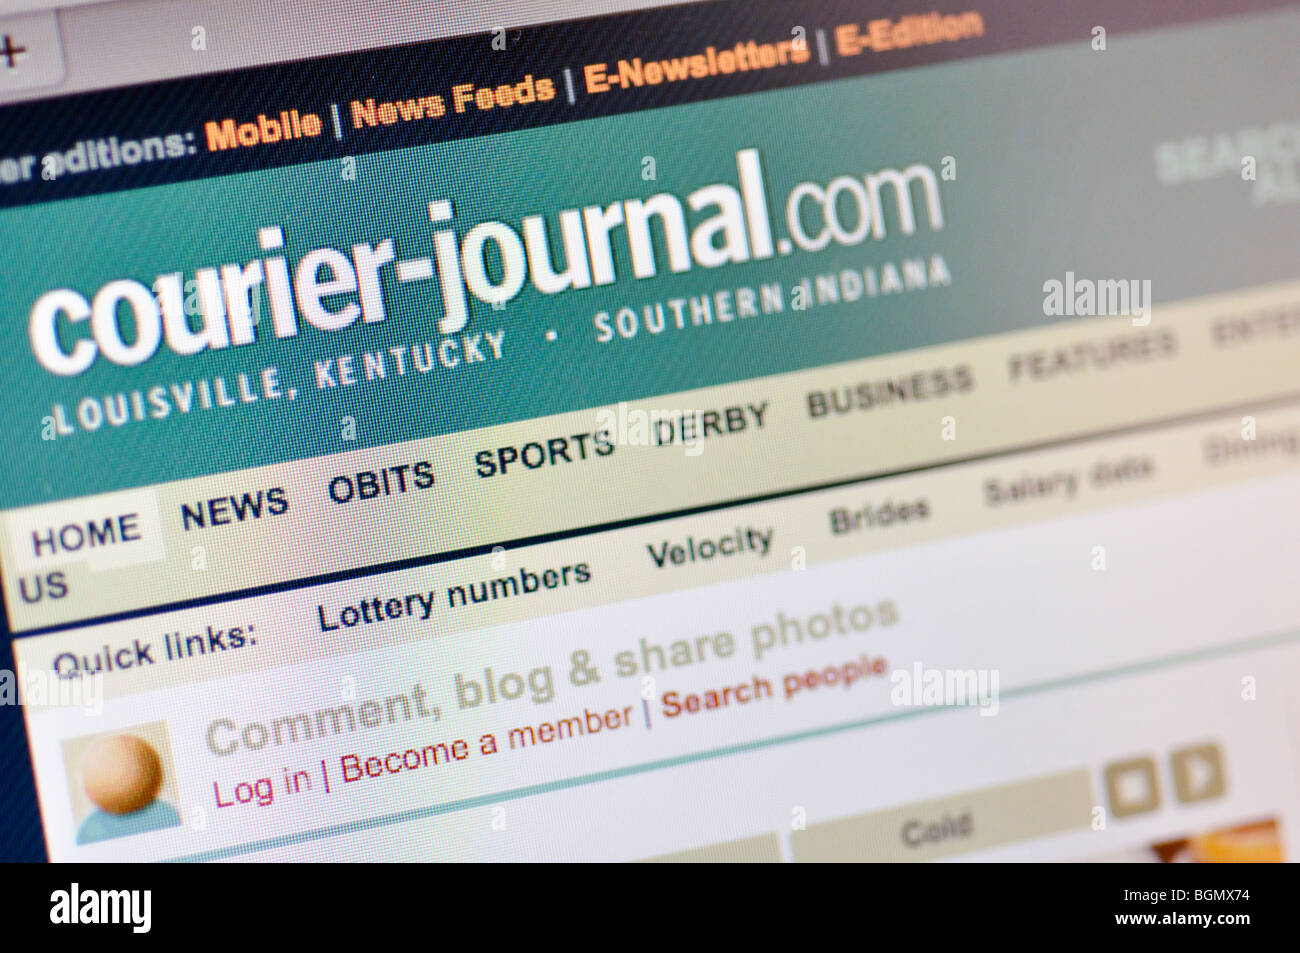 Courier Journal website - Stock Image